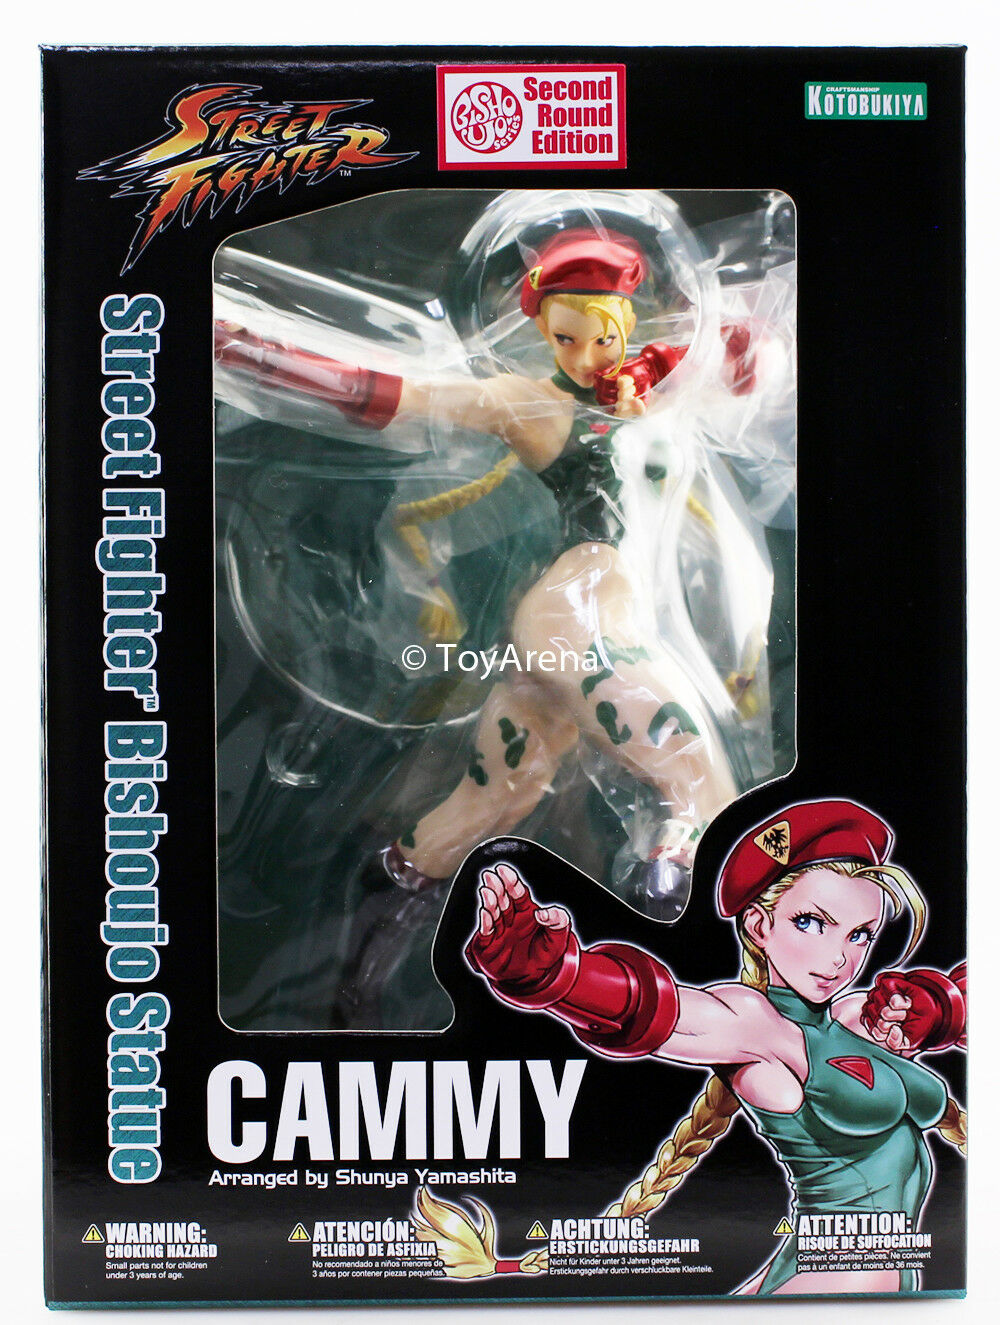 Street Fighter Kotobukiya Cammy Bishoujo Statue SV103 Second Round Edition USA